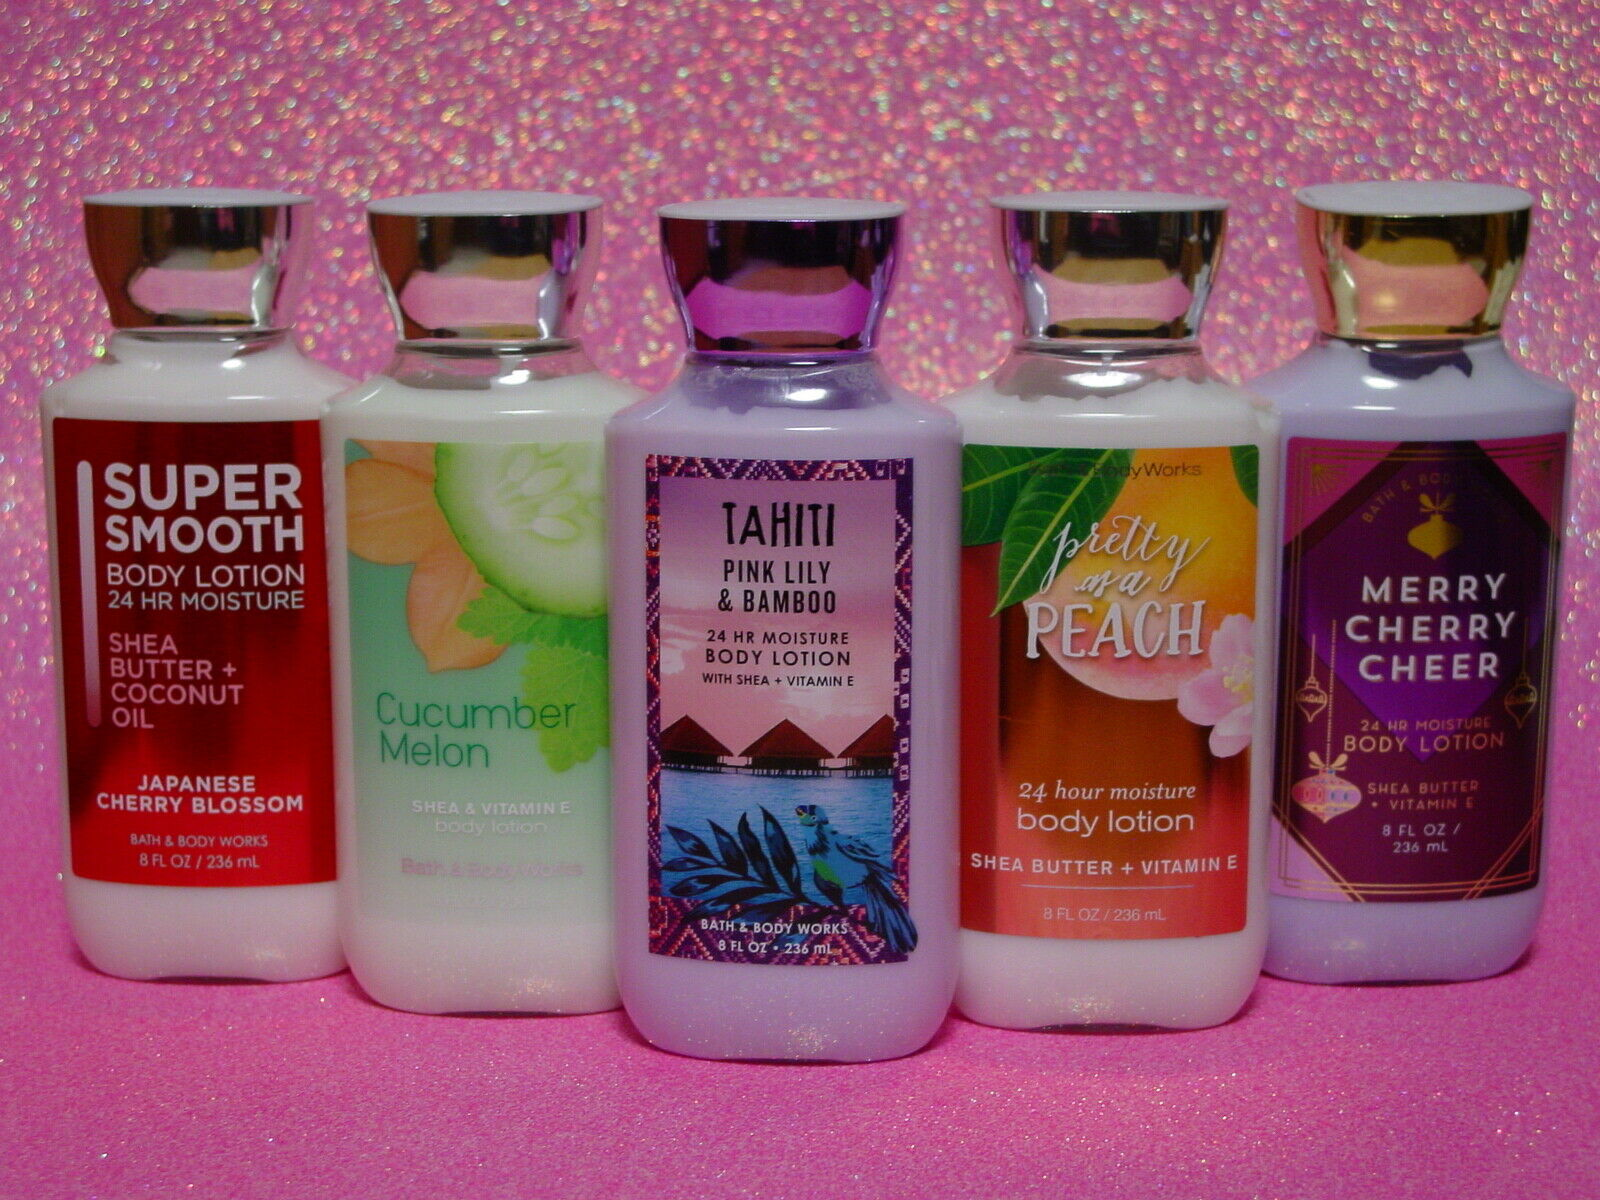 BATH & BODY WORKS BODY LOTION 8 OZ. SINGLES EVERYDAY, SPRING